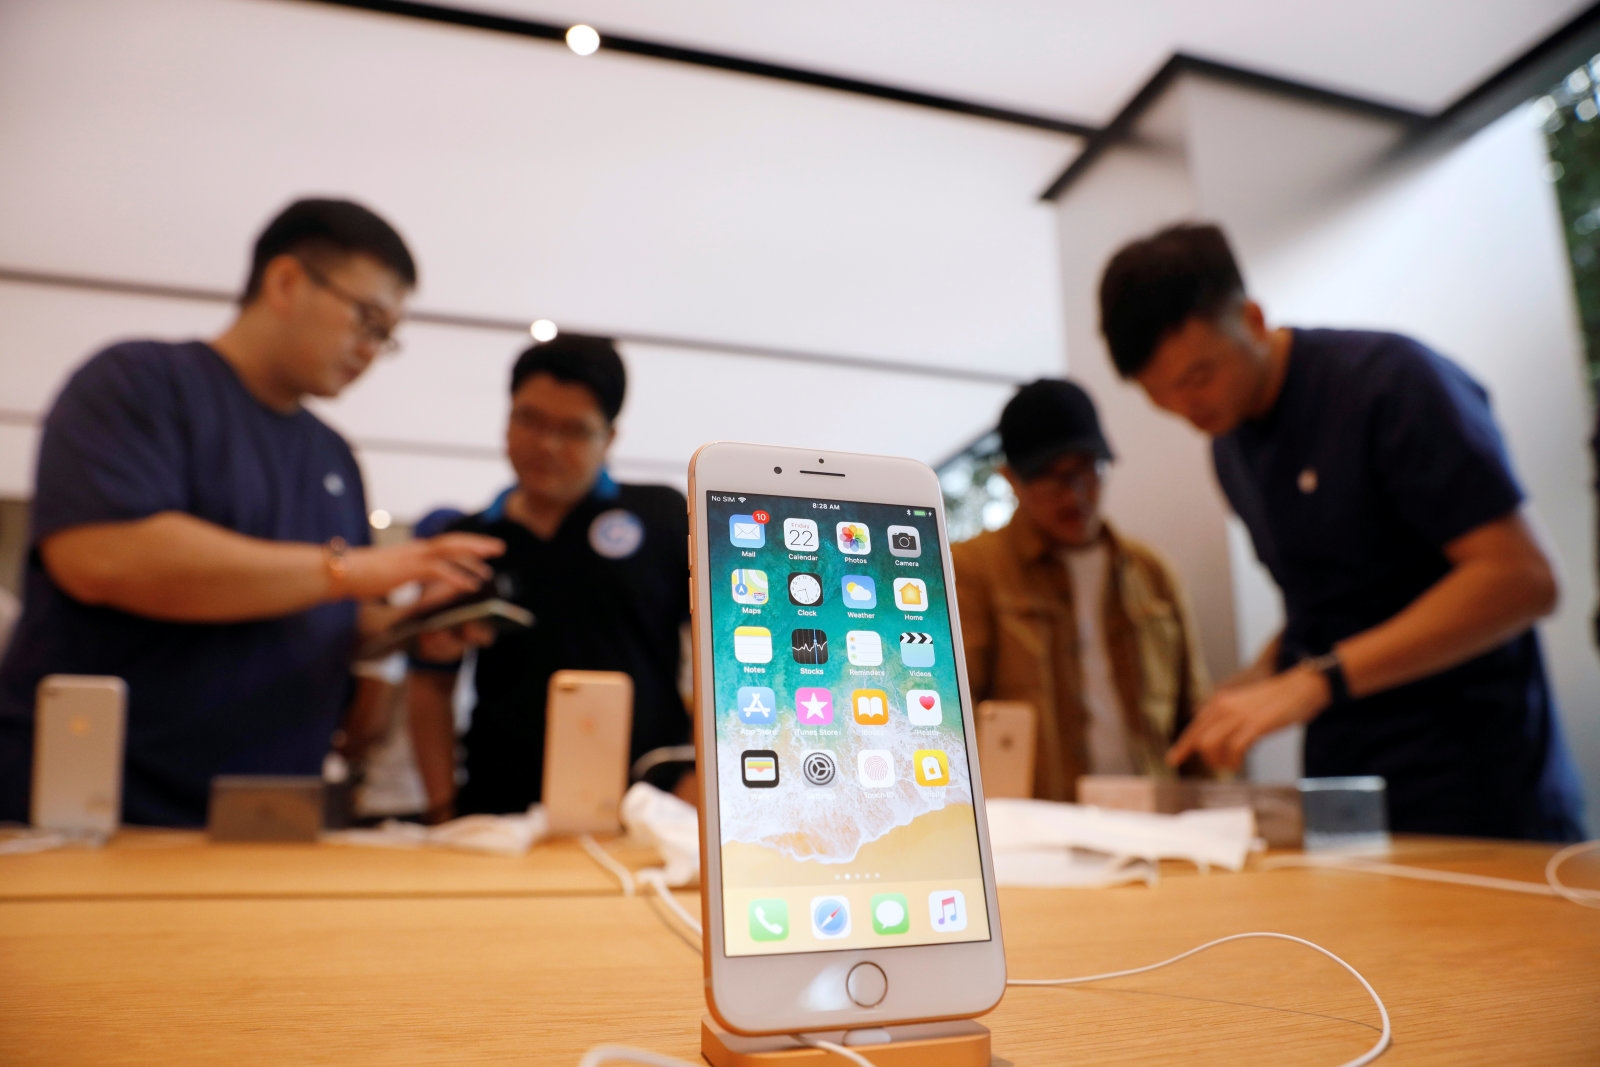 Best Buy bets you'll pay $100 extra for an iPhone X | DeviceDaily.com